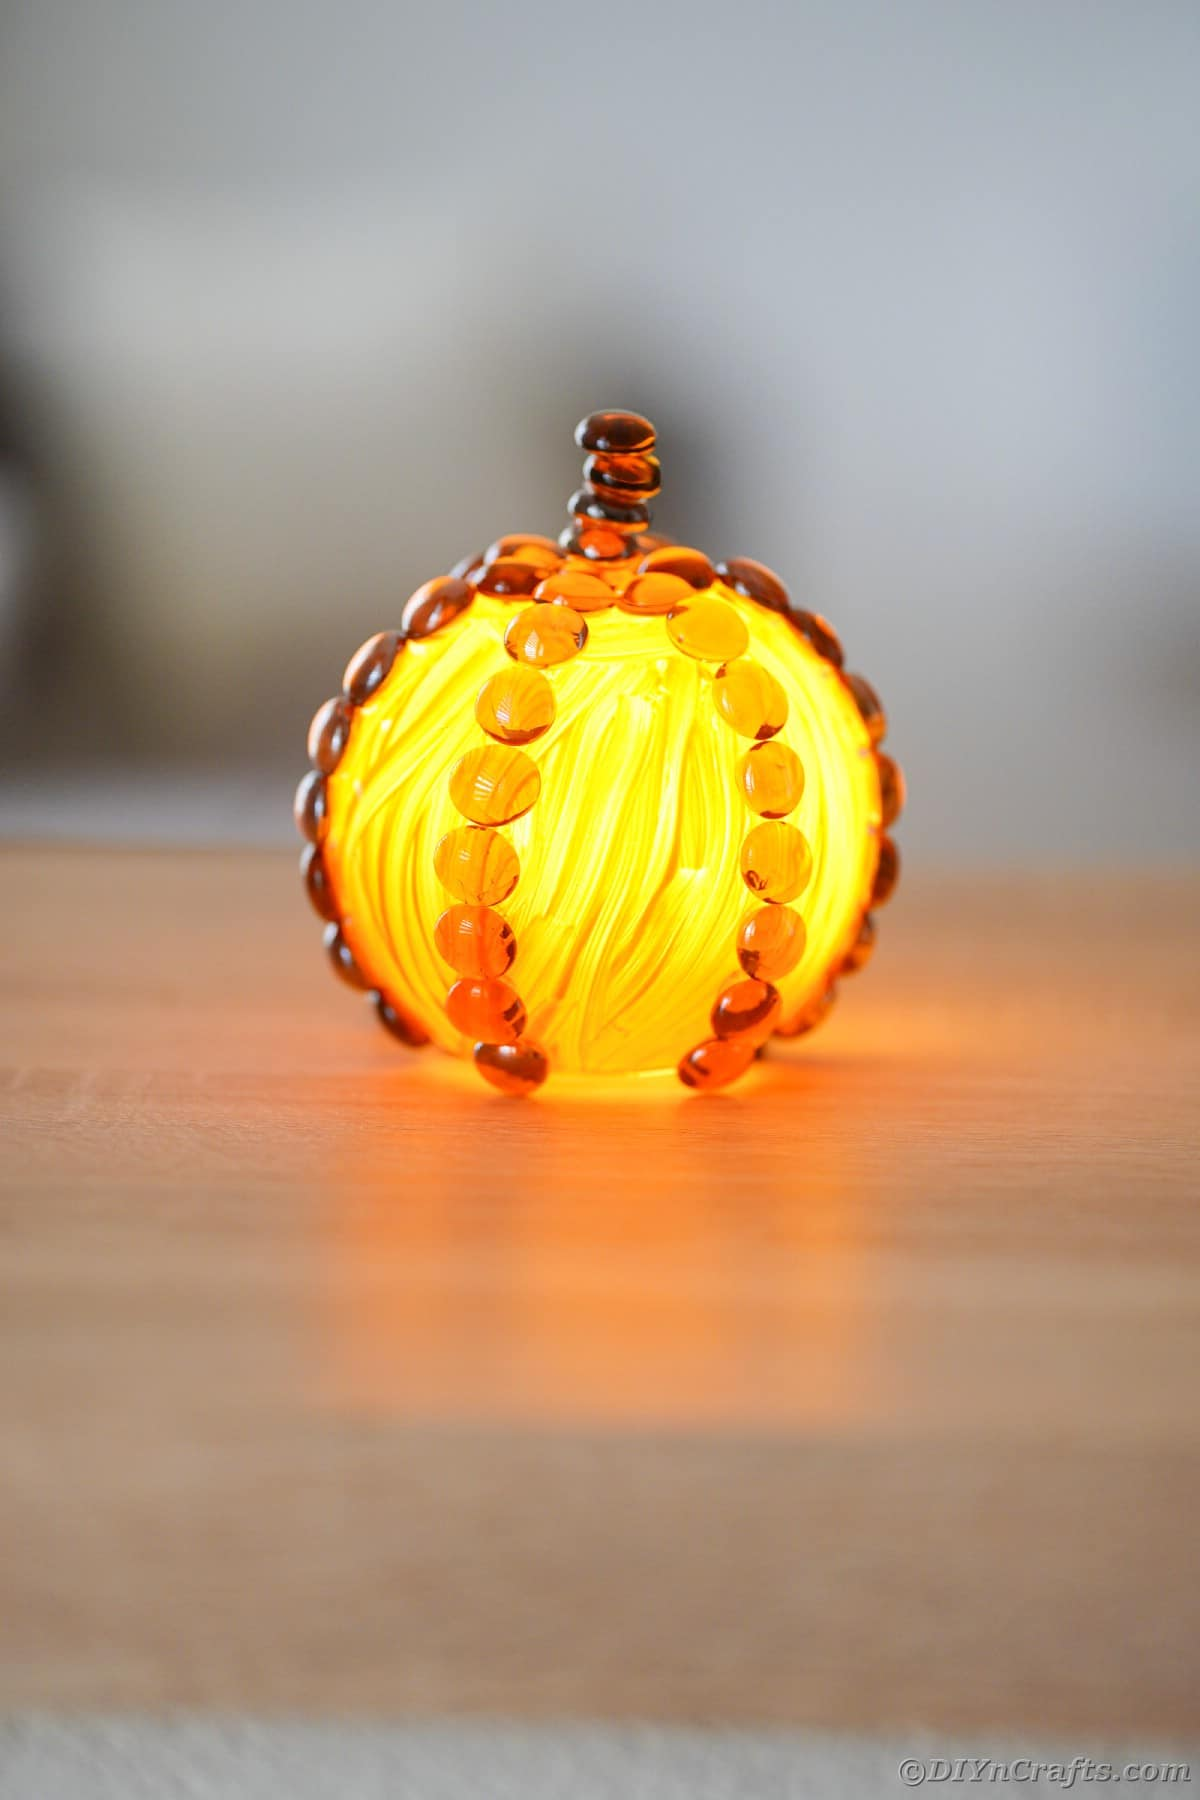 Painted glass pumpkin on table with candle inside